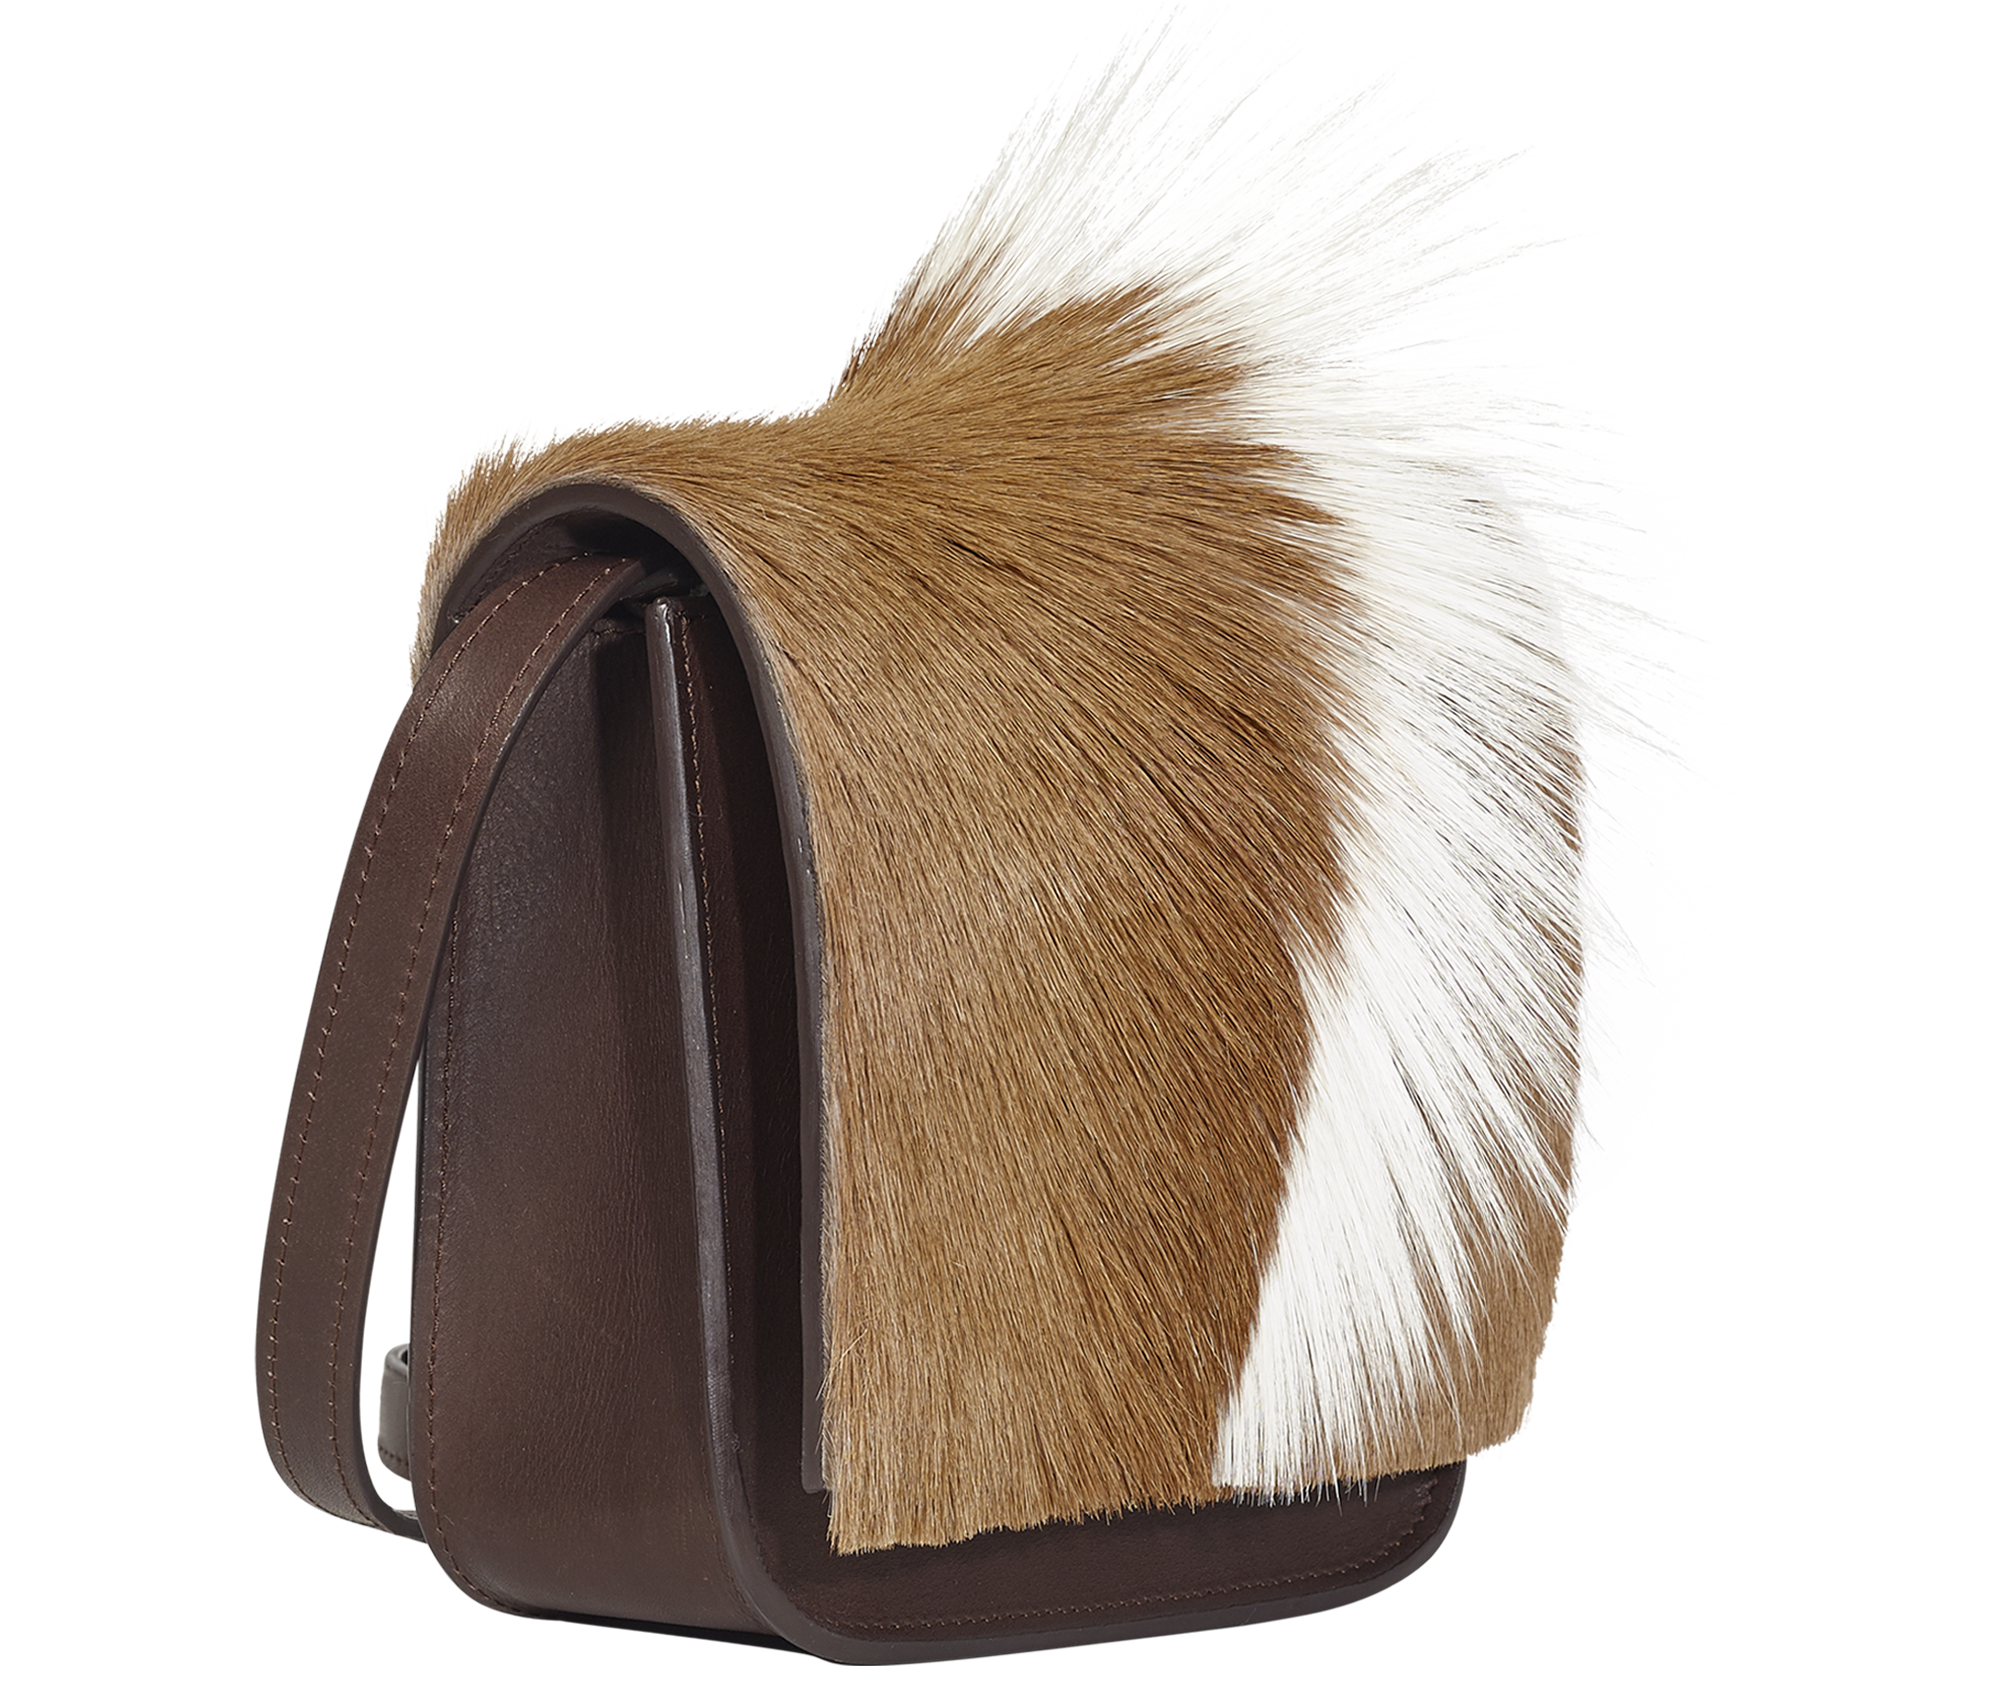 products/mohawk-crossbody-bag-handbag-16612480319588.png